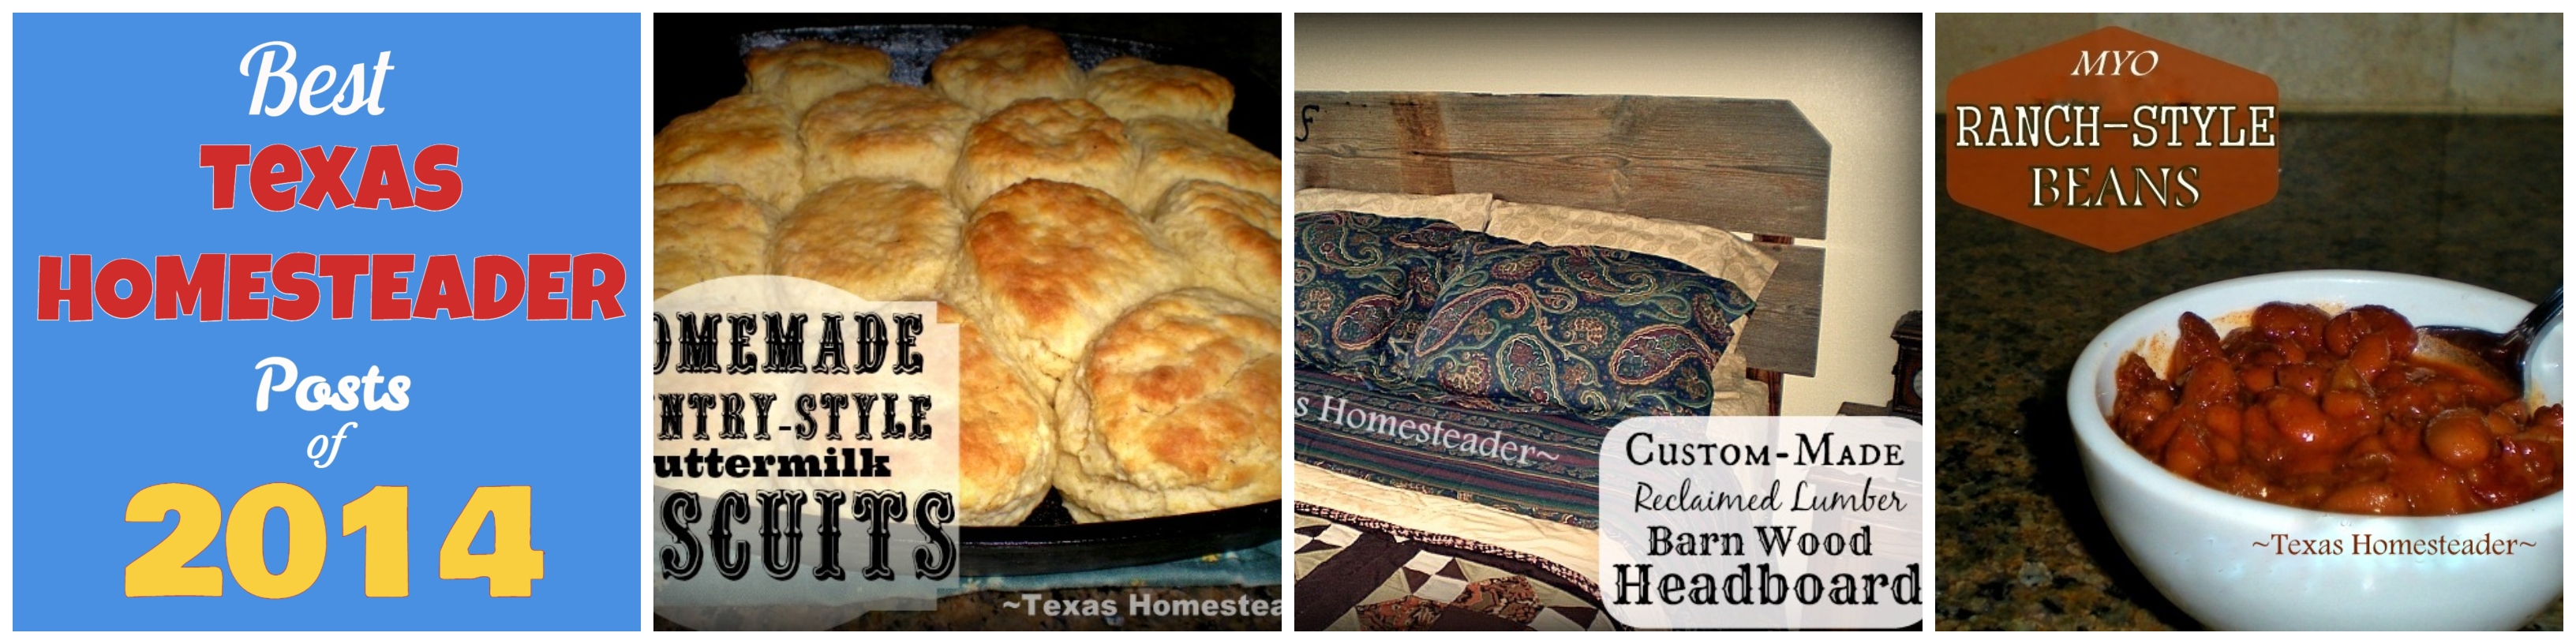 Here are the Top 10 Homesteading Posts on our page since 2013.This is the yearly roundup version - all the year's top 10 in one place! #TexasHomesteader